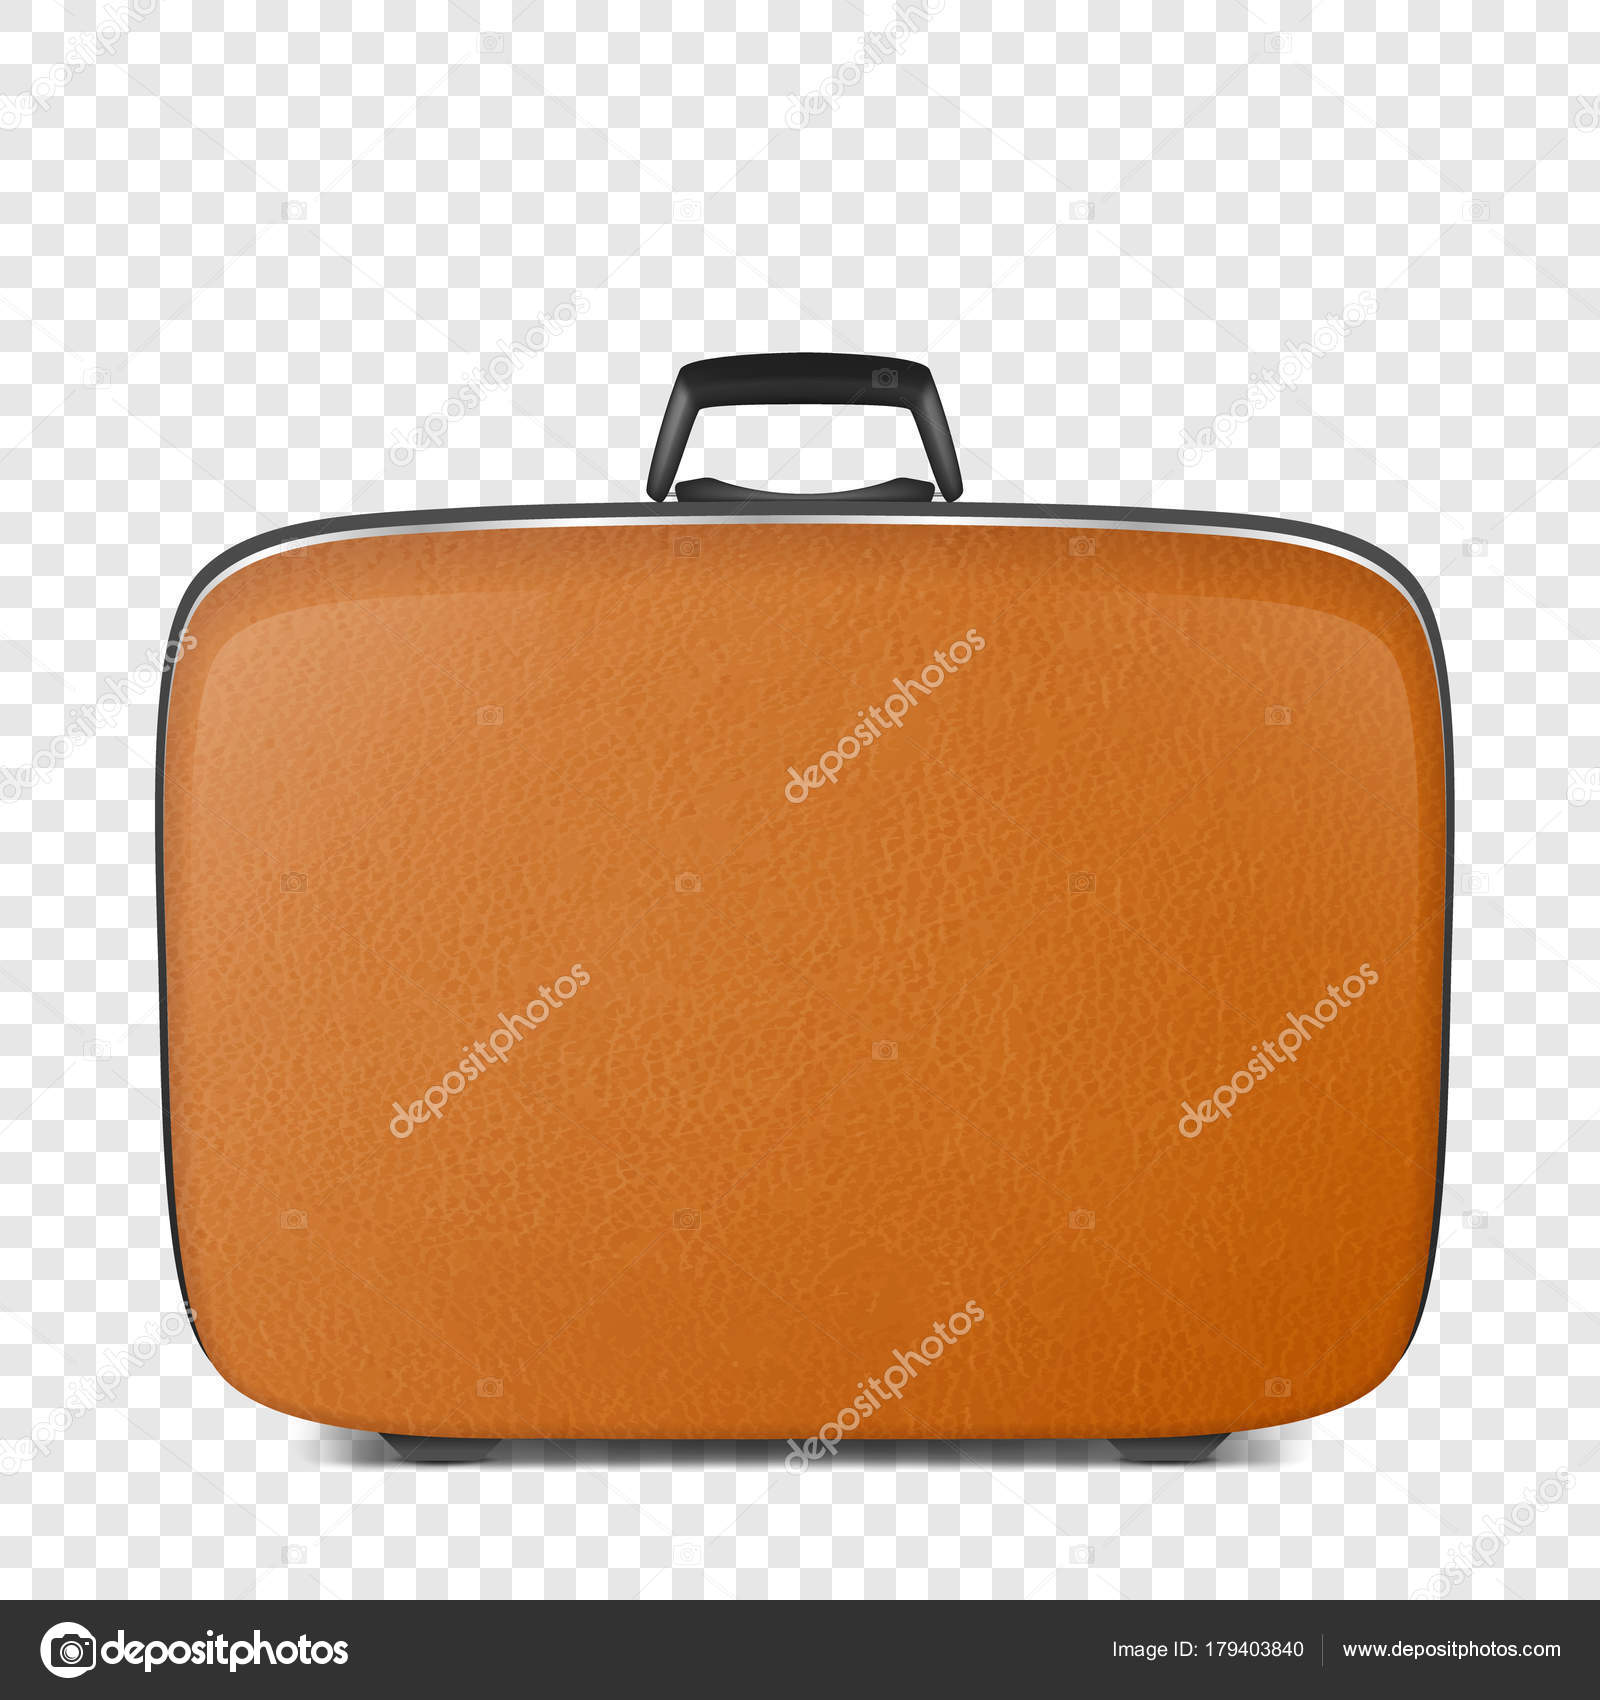 Realistic Vector Retro Vintage Leather Brown Suitcase Closeup Isolated On Transparency Grid Background Design Template Clipart Or Mockup For Graphics